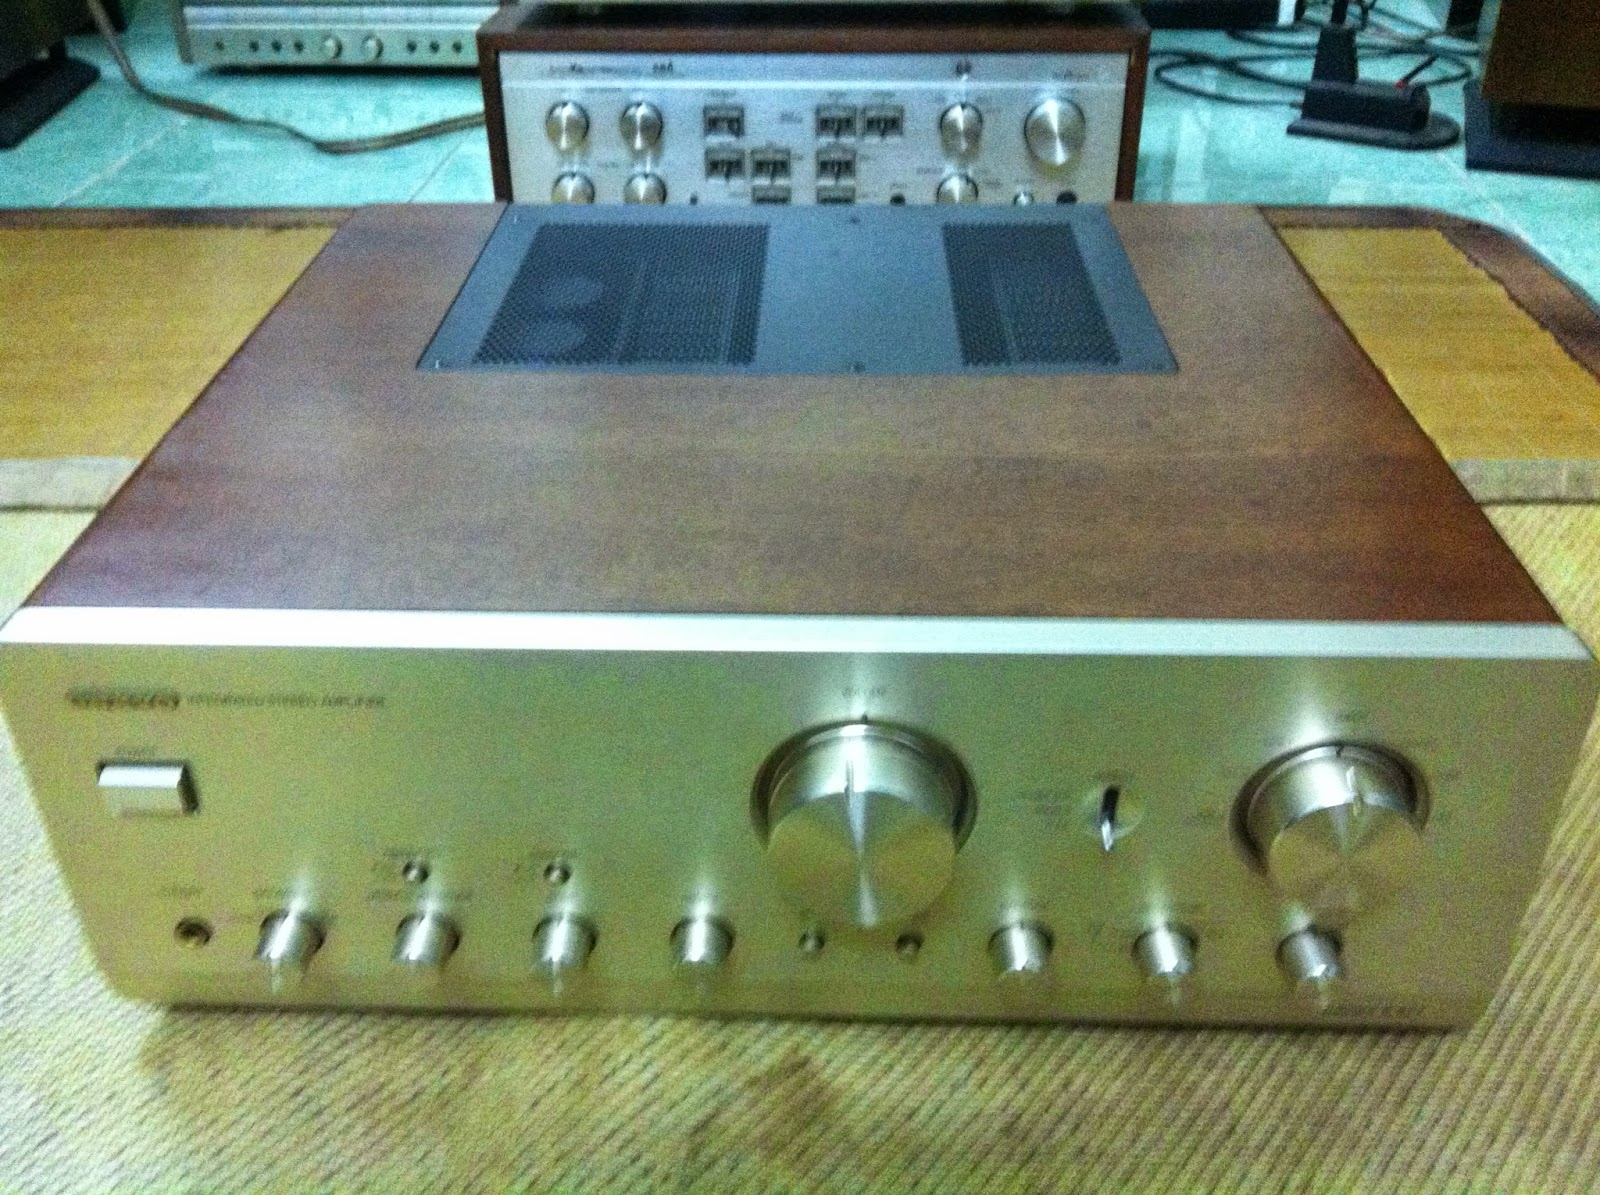 Amply ONKYO A-927 - Made in Japan